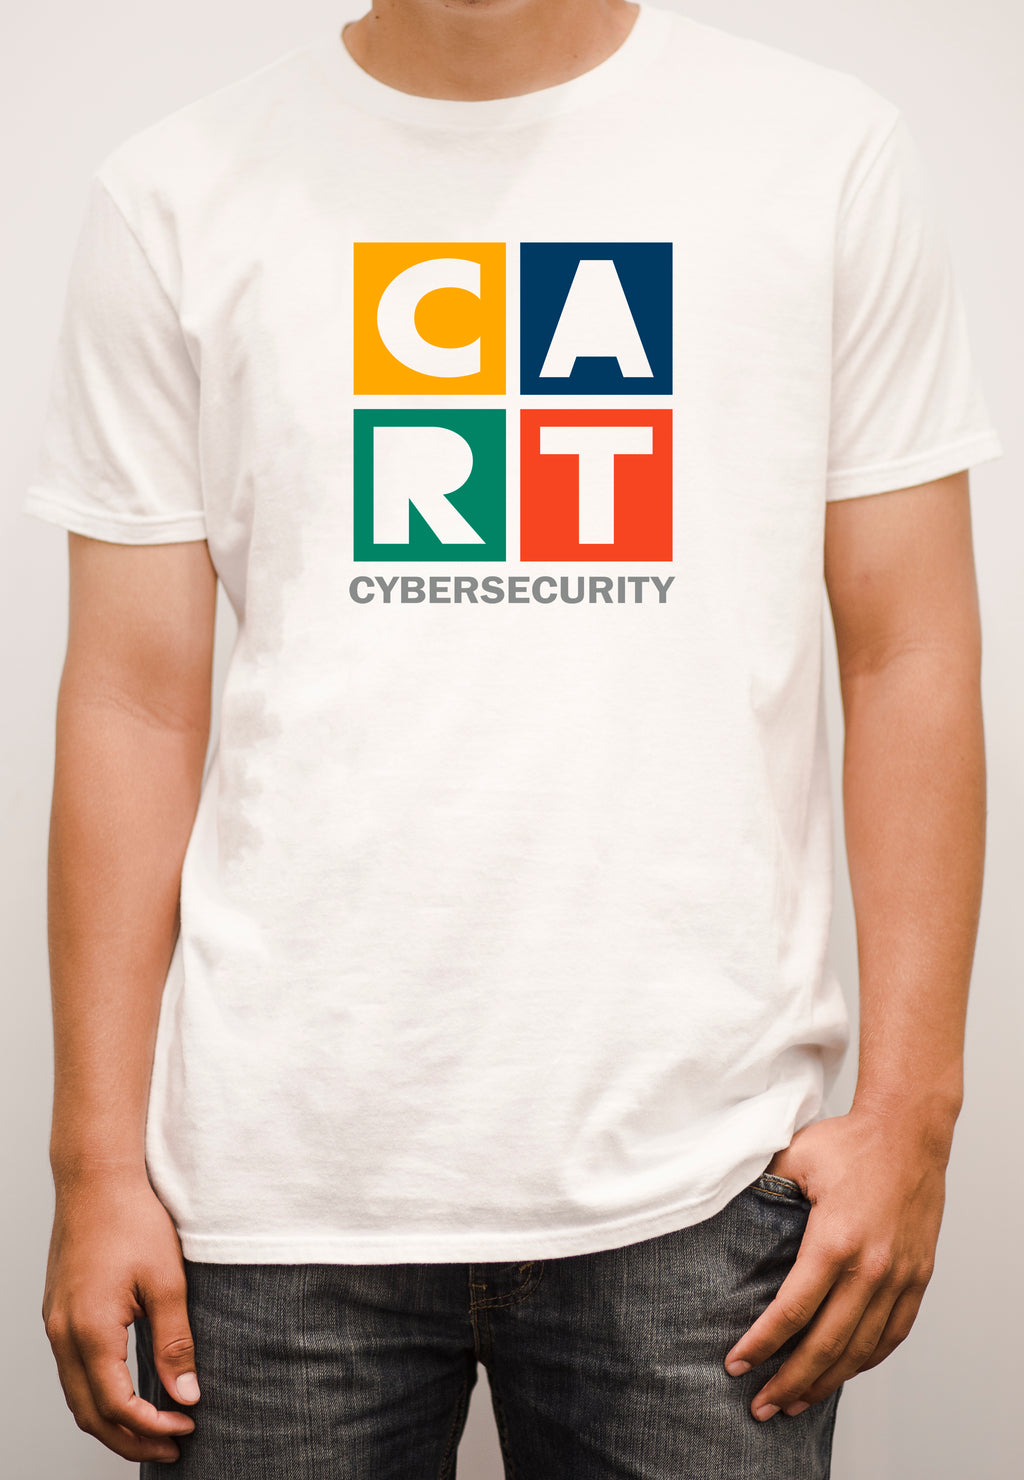 Short sleeve t-shirt - cybersecurity grey/multicolor logo